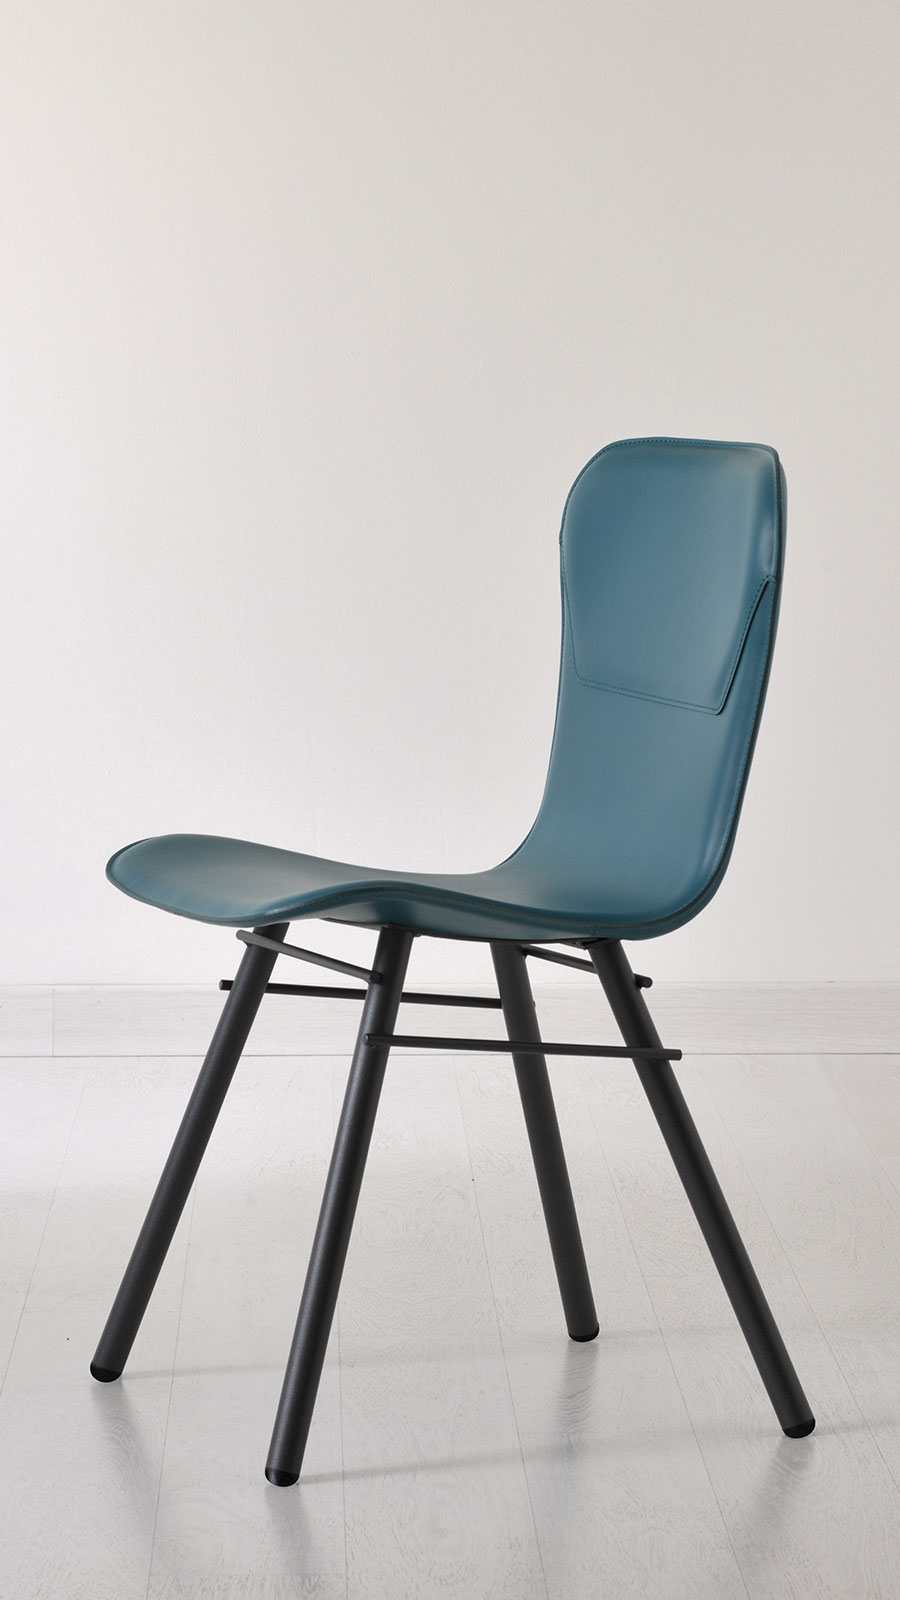 Anthracite grey metal base and leather covered seat available in several colours. Boulevard chair by Studio Memo is perfect at home as well as in your office.